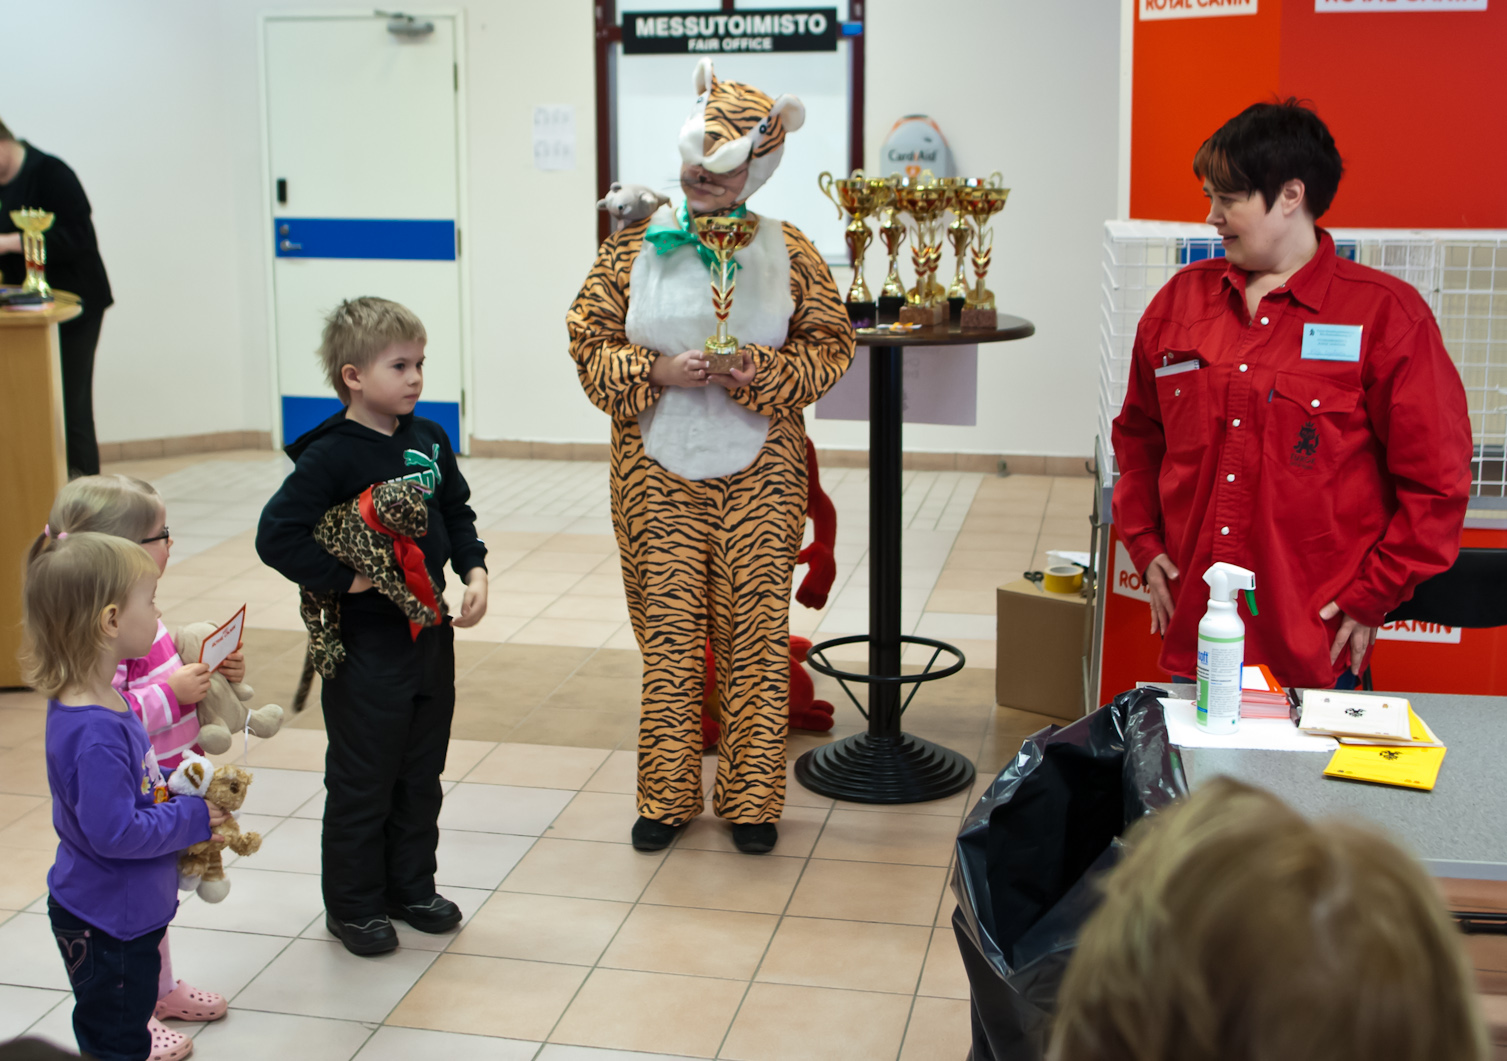 the toy cat contest, photo 191046, 2012-03-17